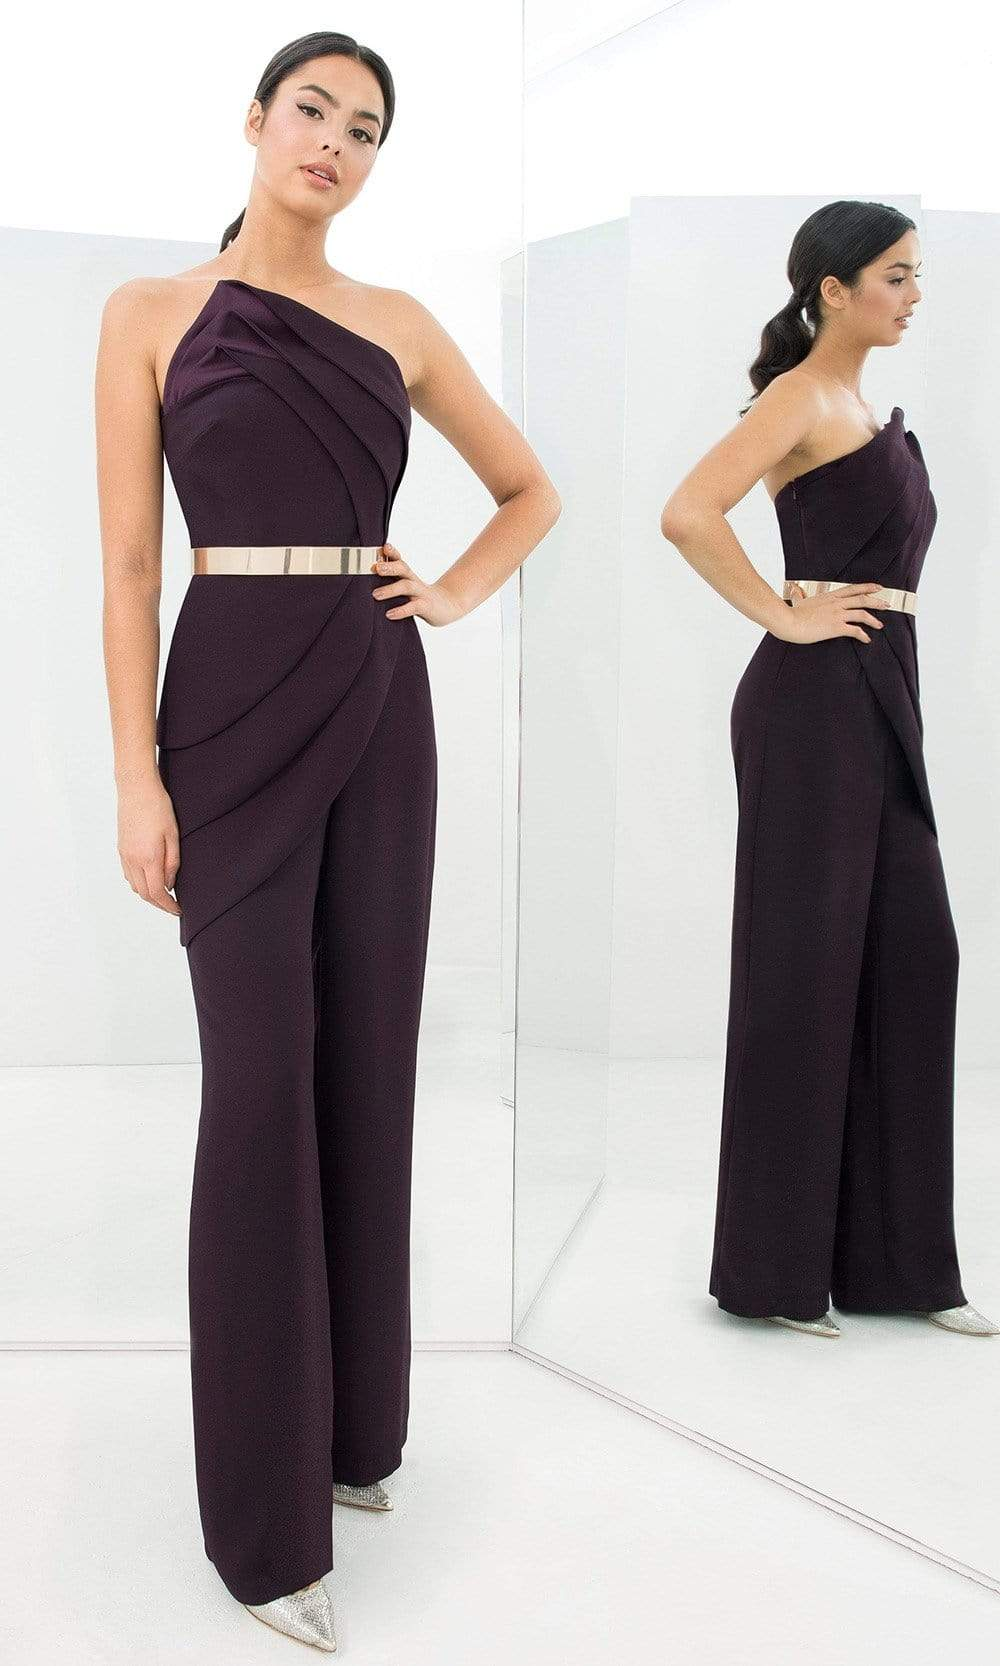 Alexander By Daymor - 1382 Strapless Asymmetric Neck Jumpsuit from Alexander By Daymor